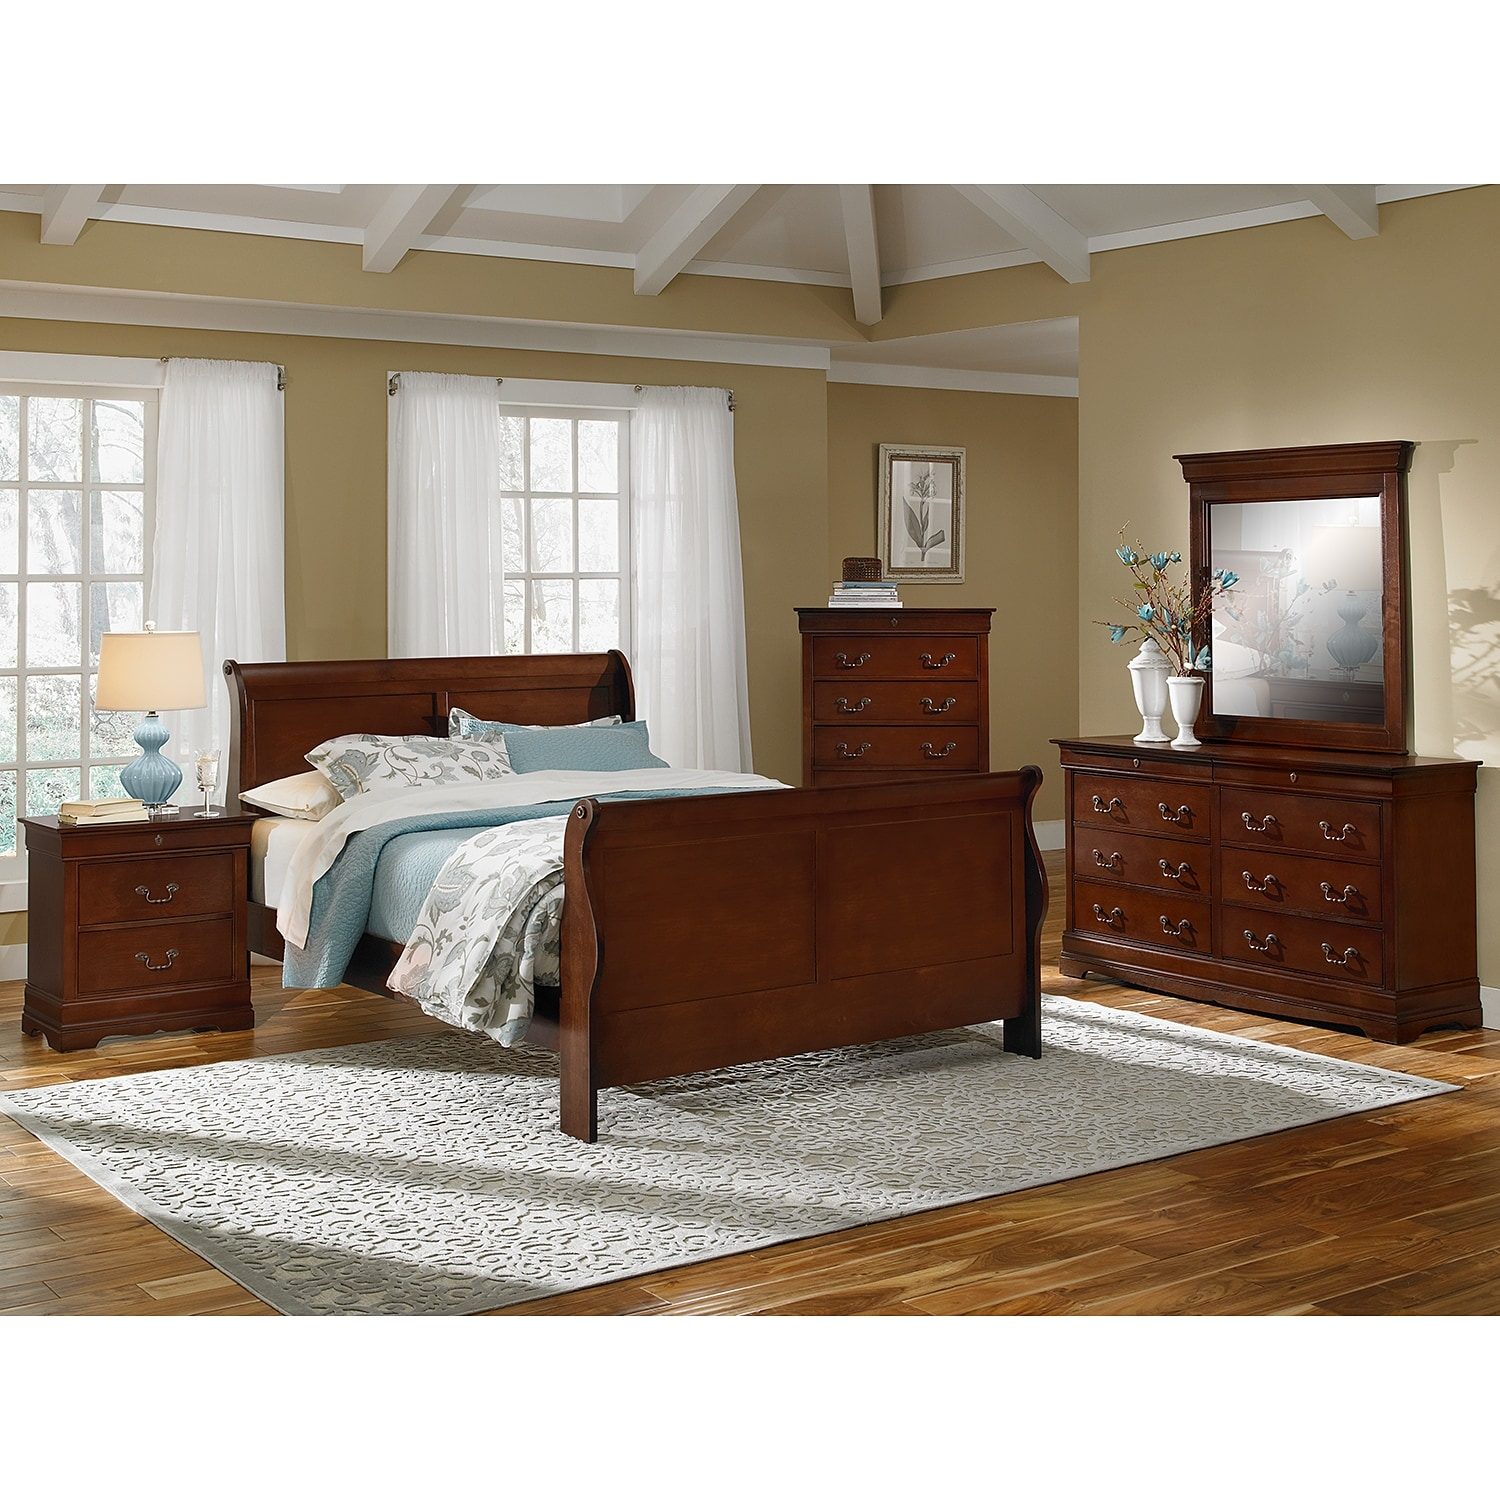 Bedroom Furniture - Neo Classic 7-Piece King Bedroom Set - Cherry